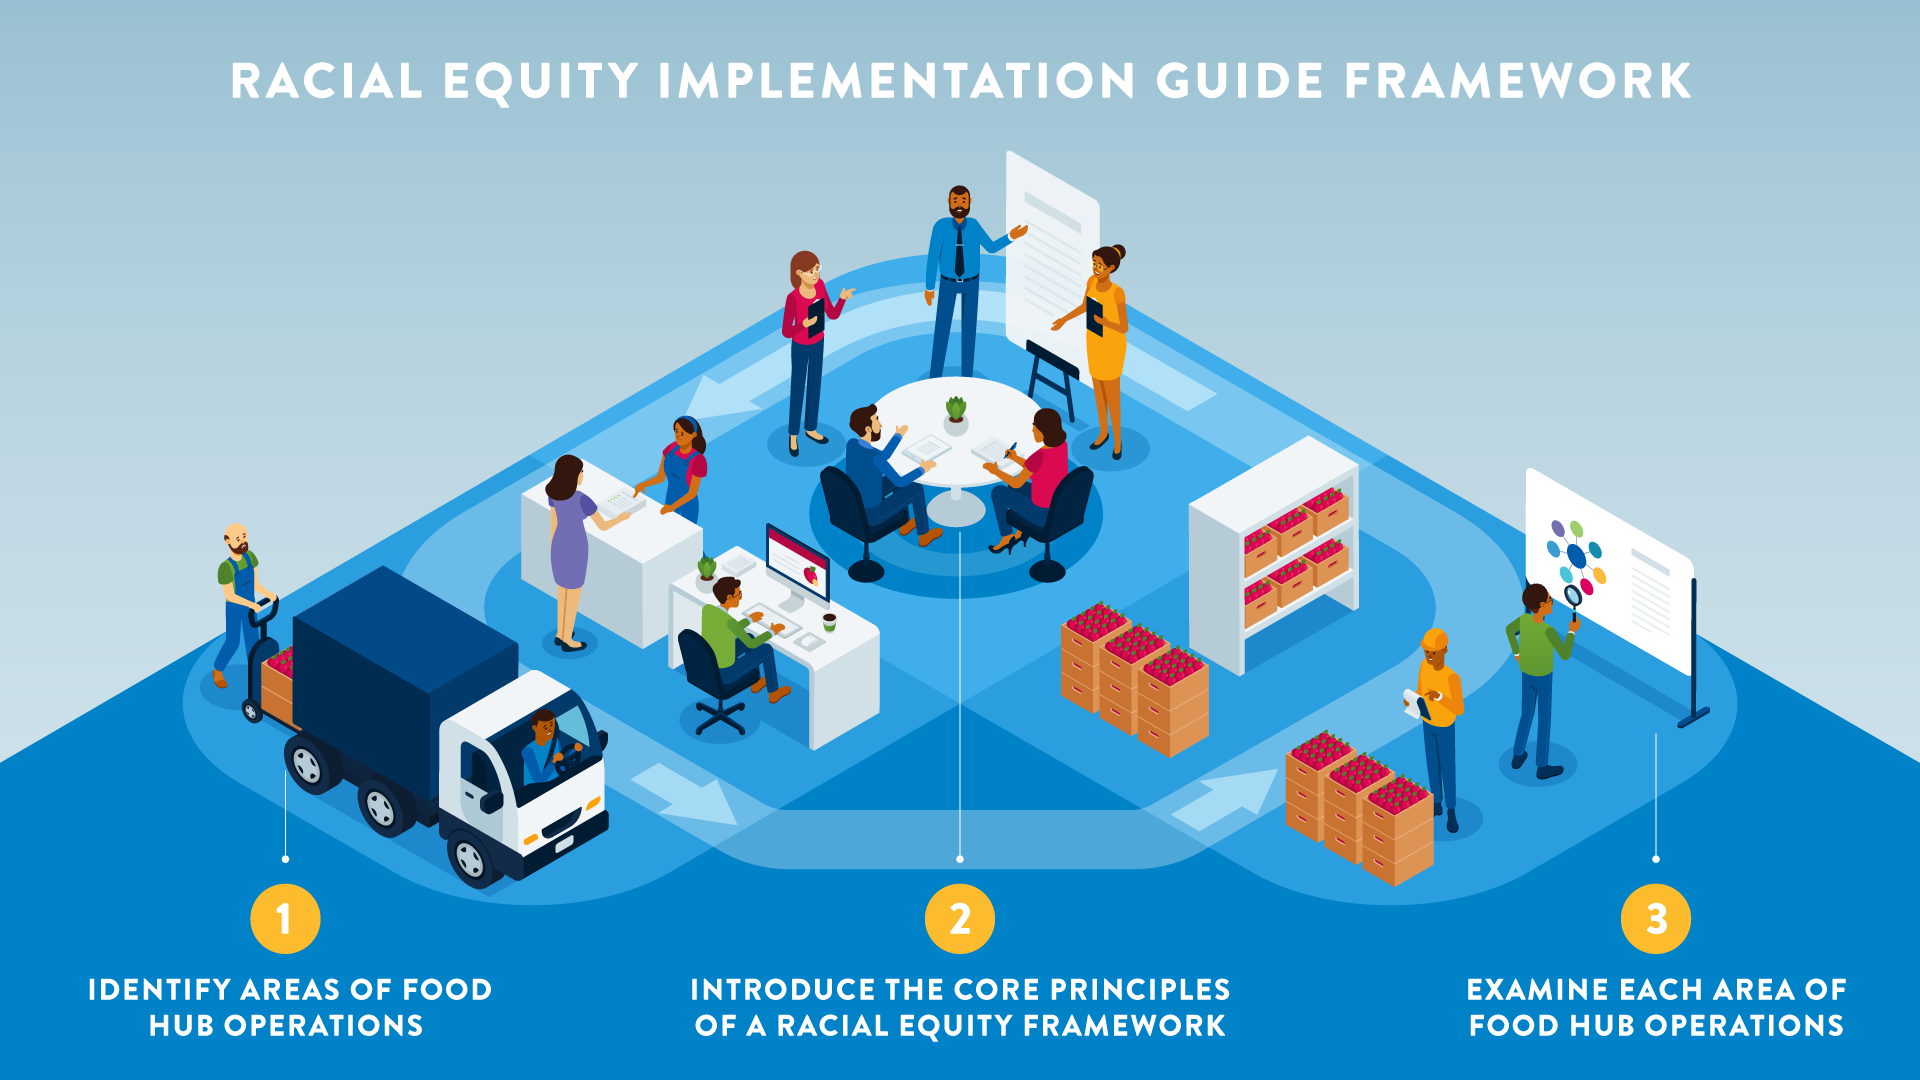 An illustration that shows three ways to implement a racial equity framework.